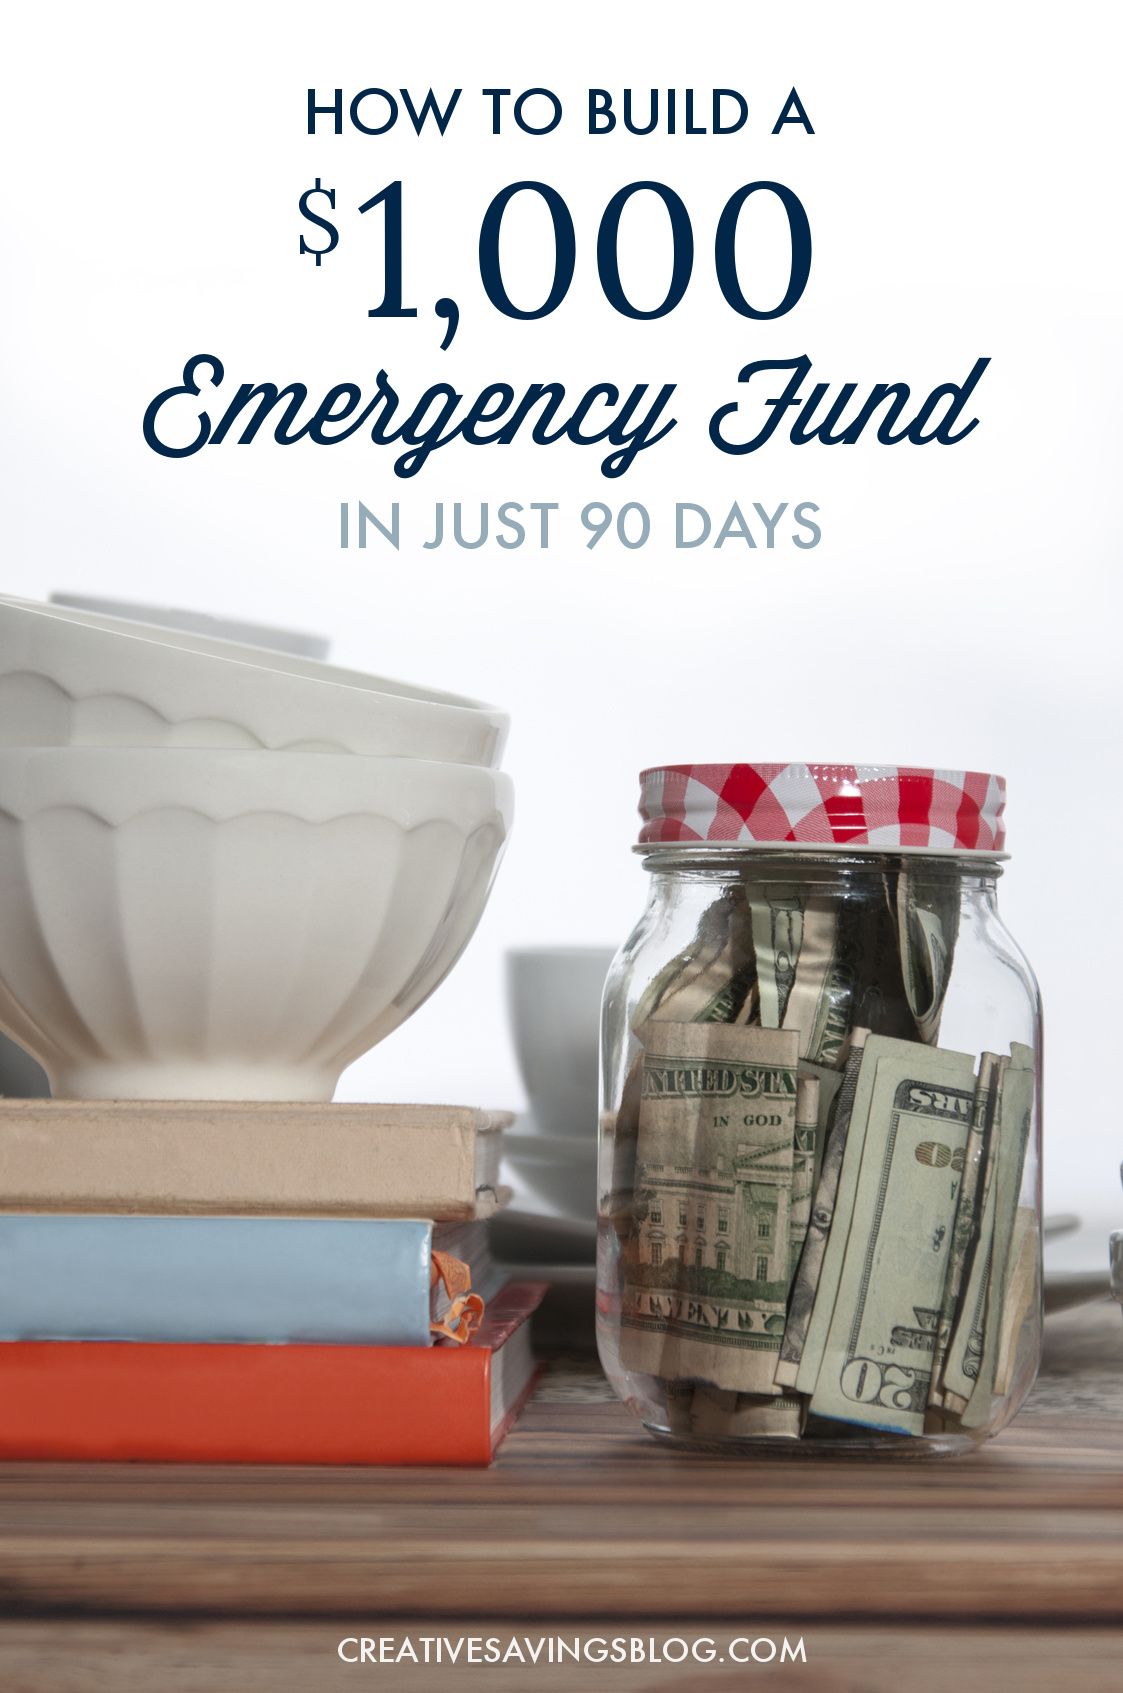 Emergency Funds are crucial to survive life's unexpected expenses, but where do you find the extra money to start one? This blogger turned her medical emergency into a money making challenge, and explains, in detail, how she earned $1,100 in just 90 days!